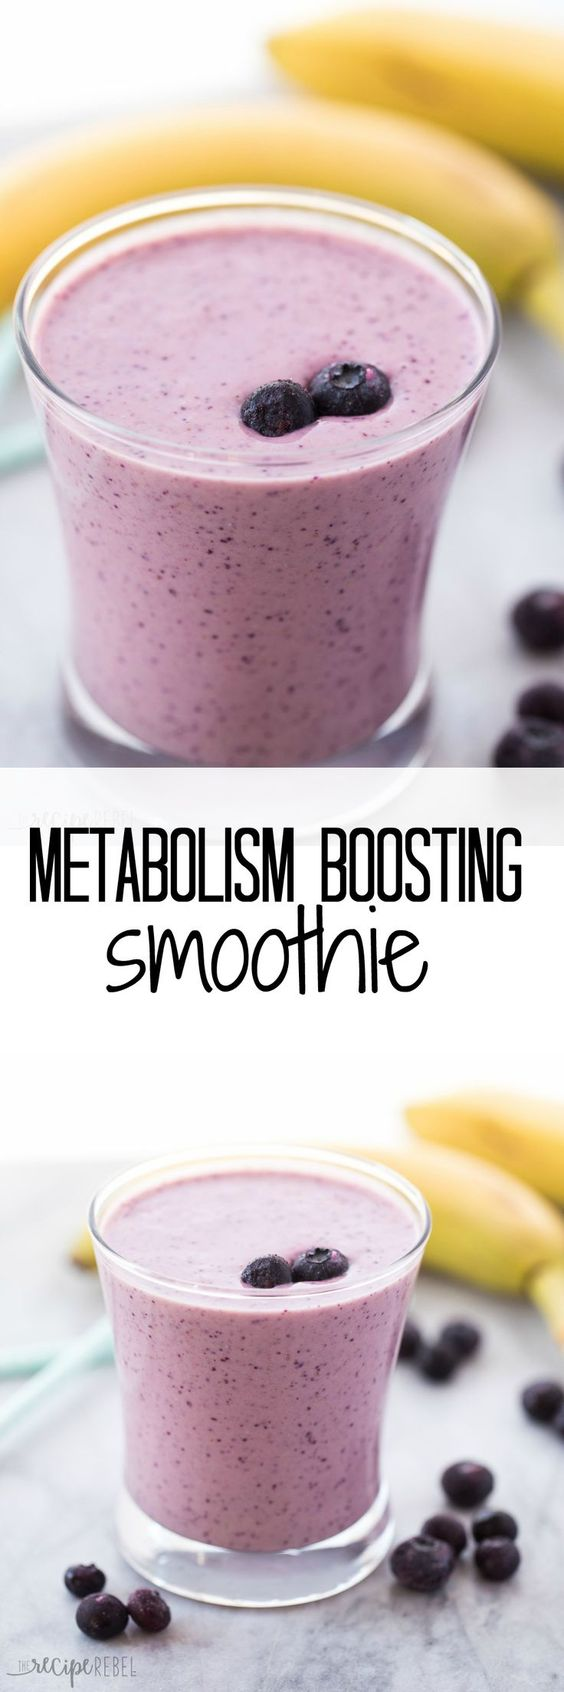 A healthy breakfast or snack to boost your metabolism and fill you up! You'll never guess my secret ingredient